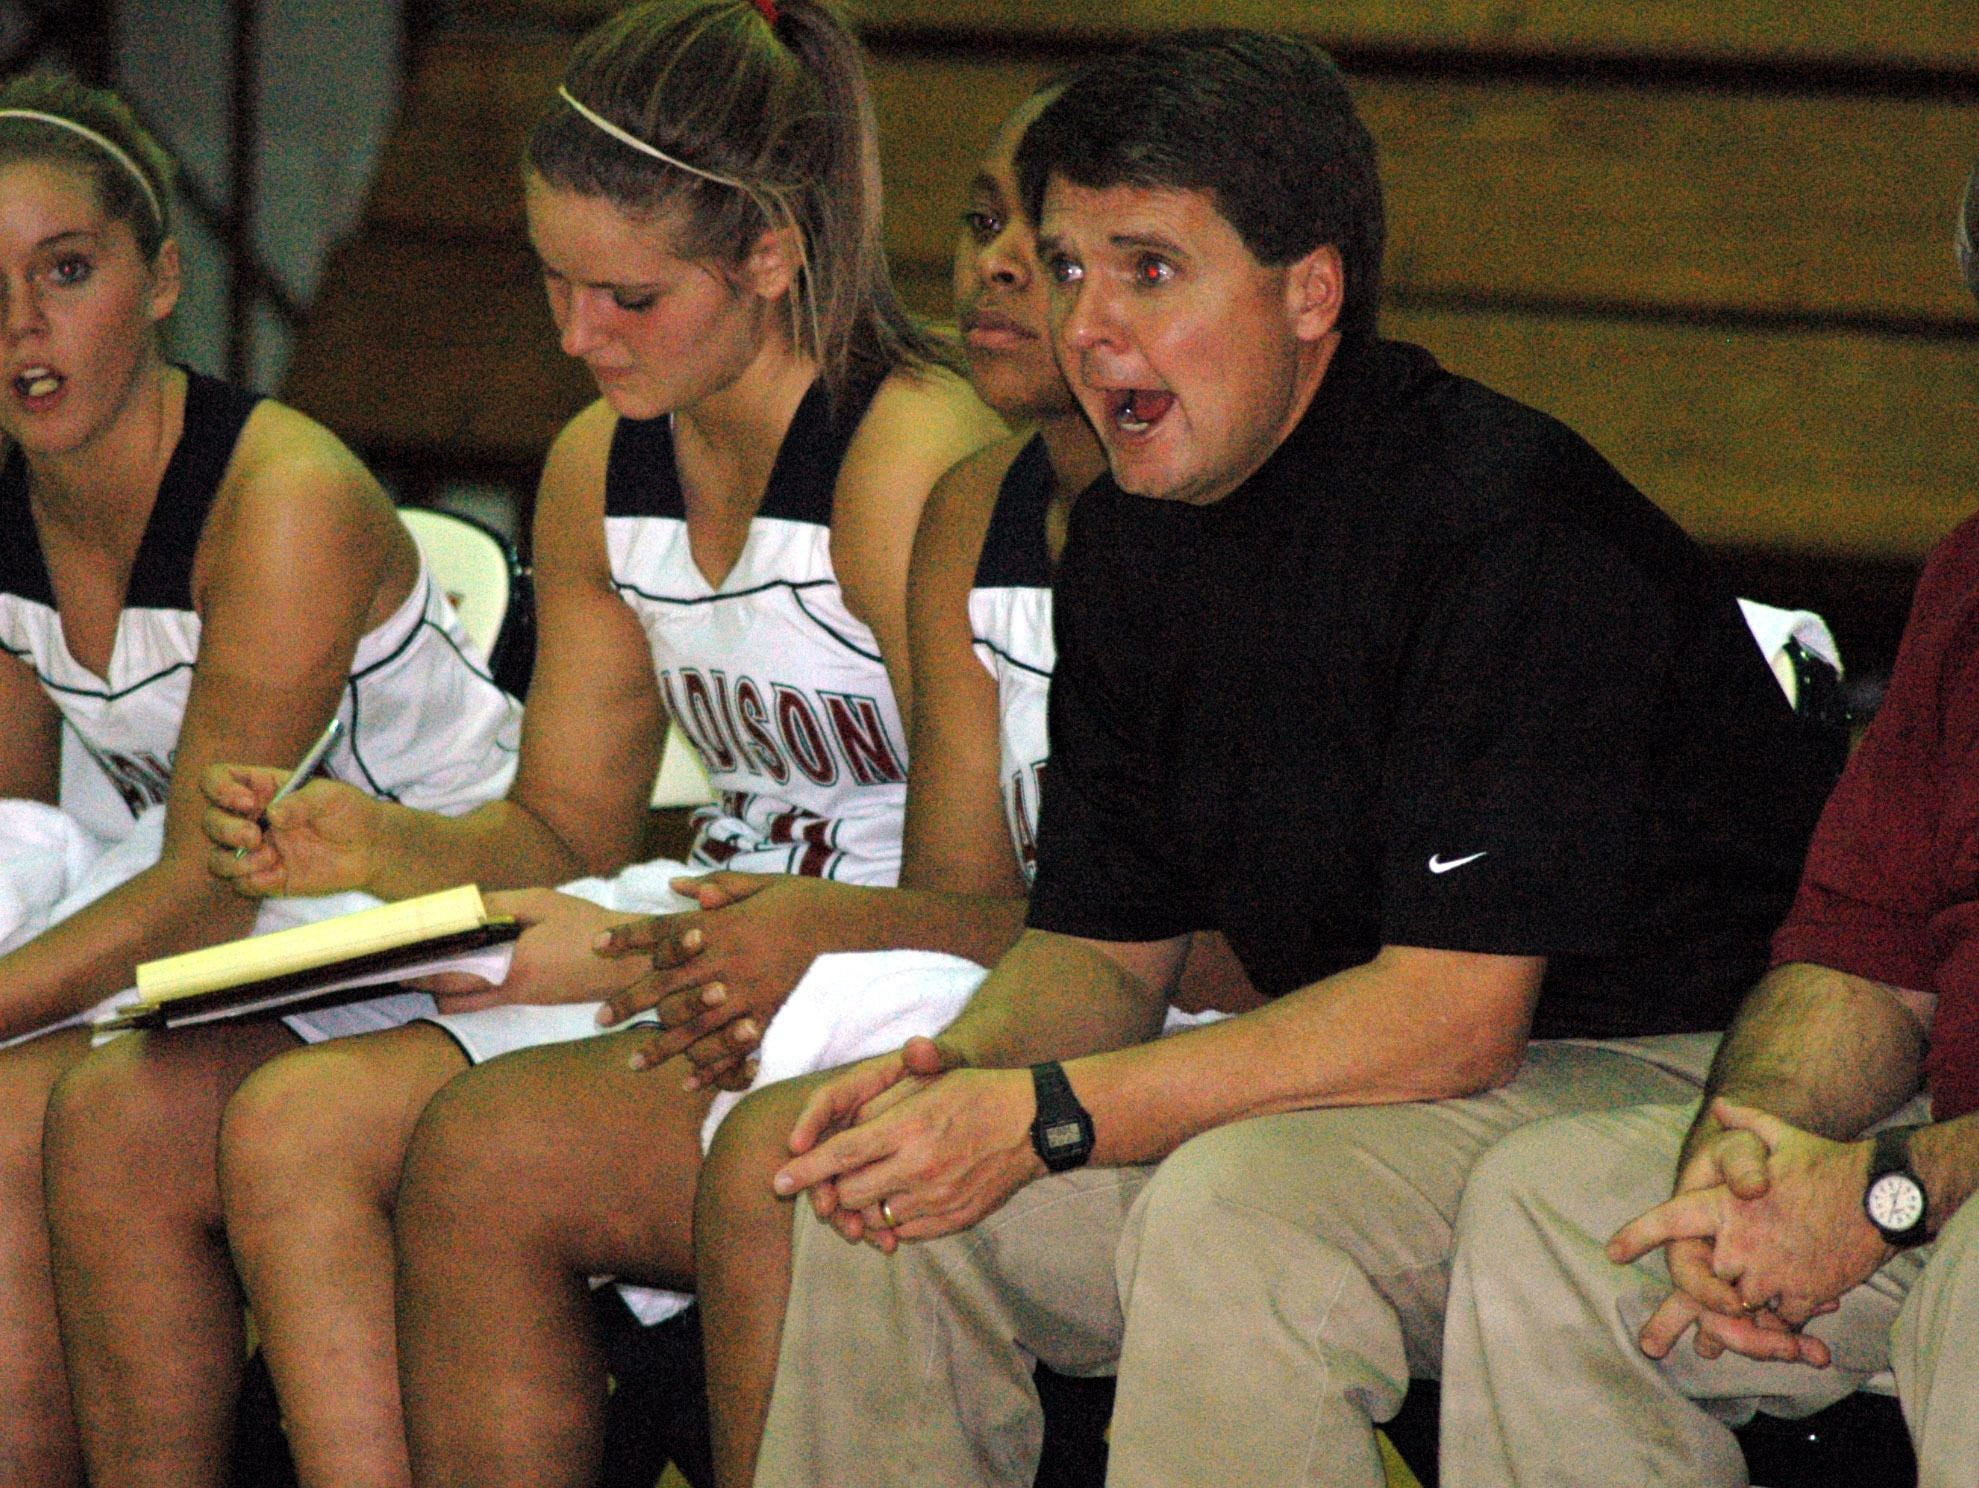 Steve Patterson resigned as the girls' basketball coach at Madison this week.